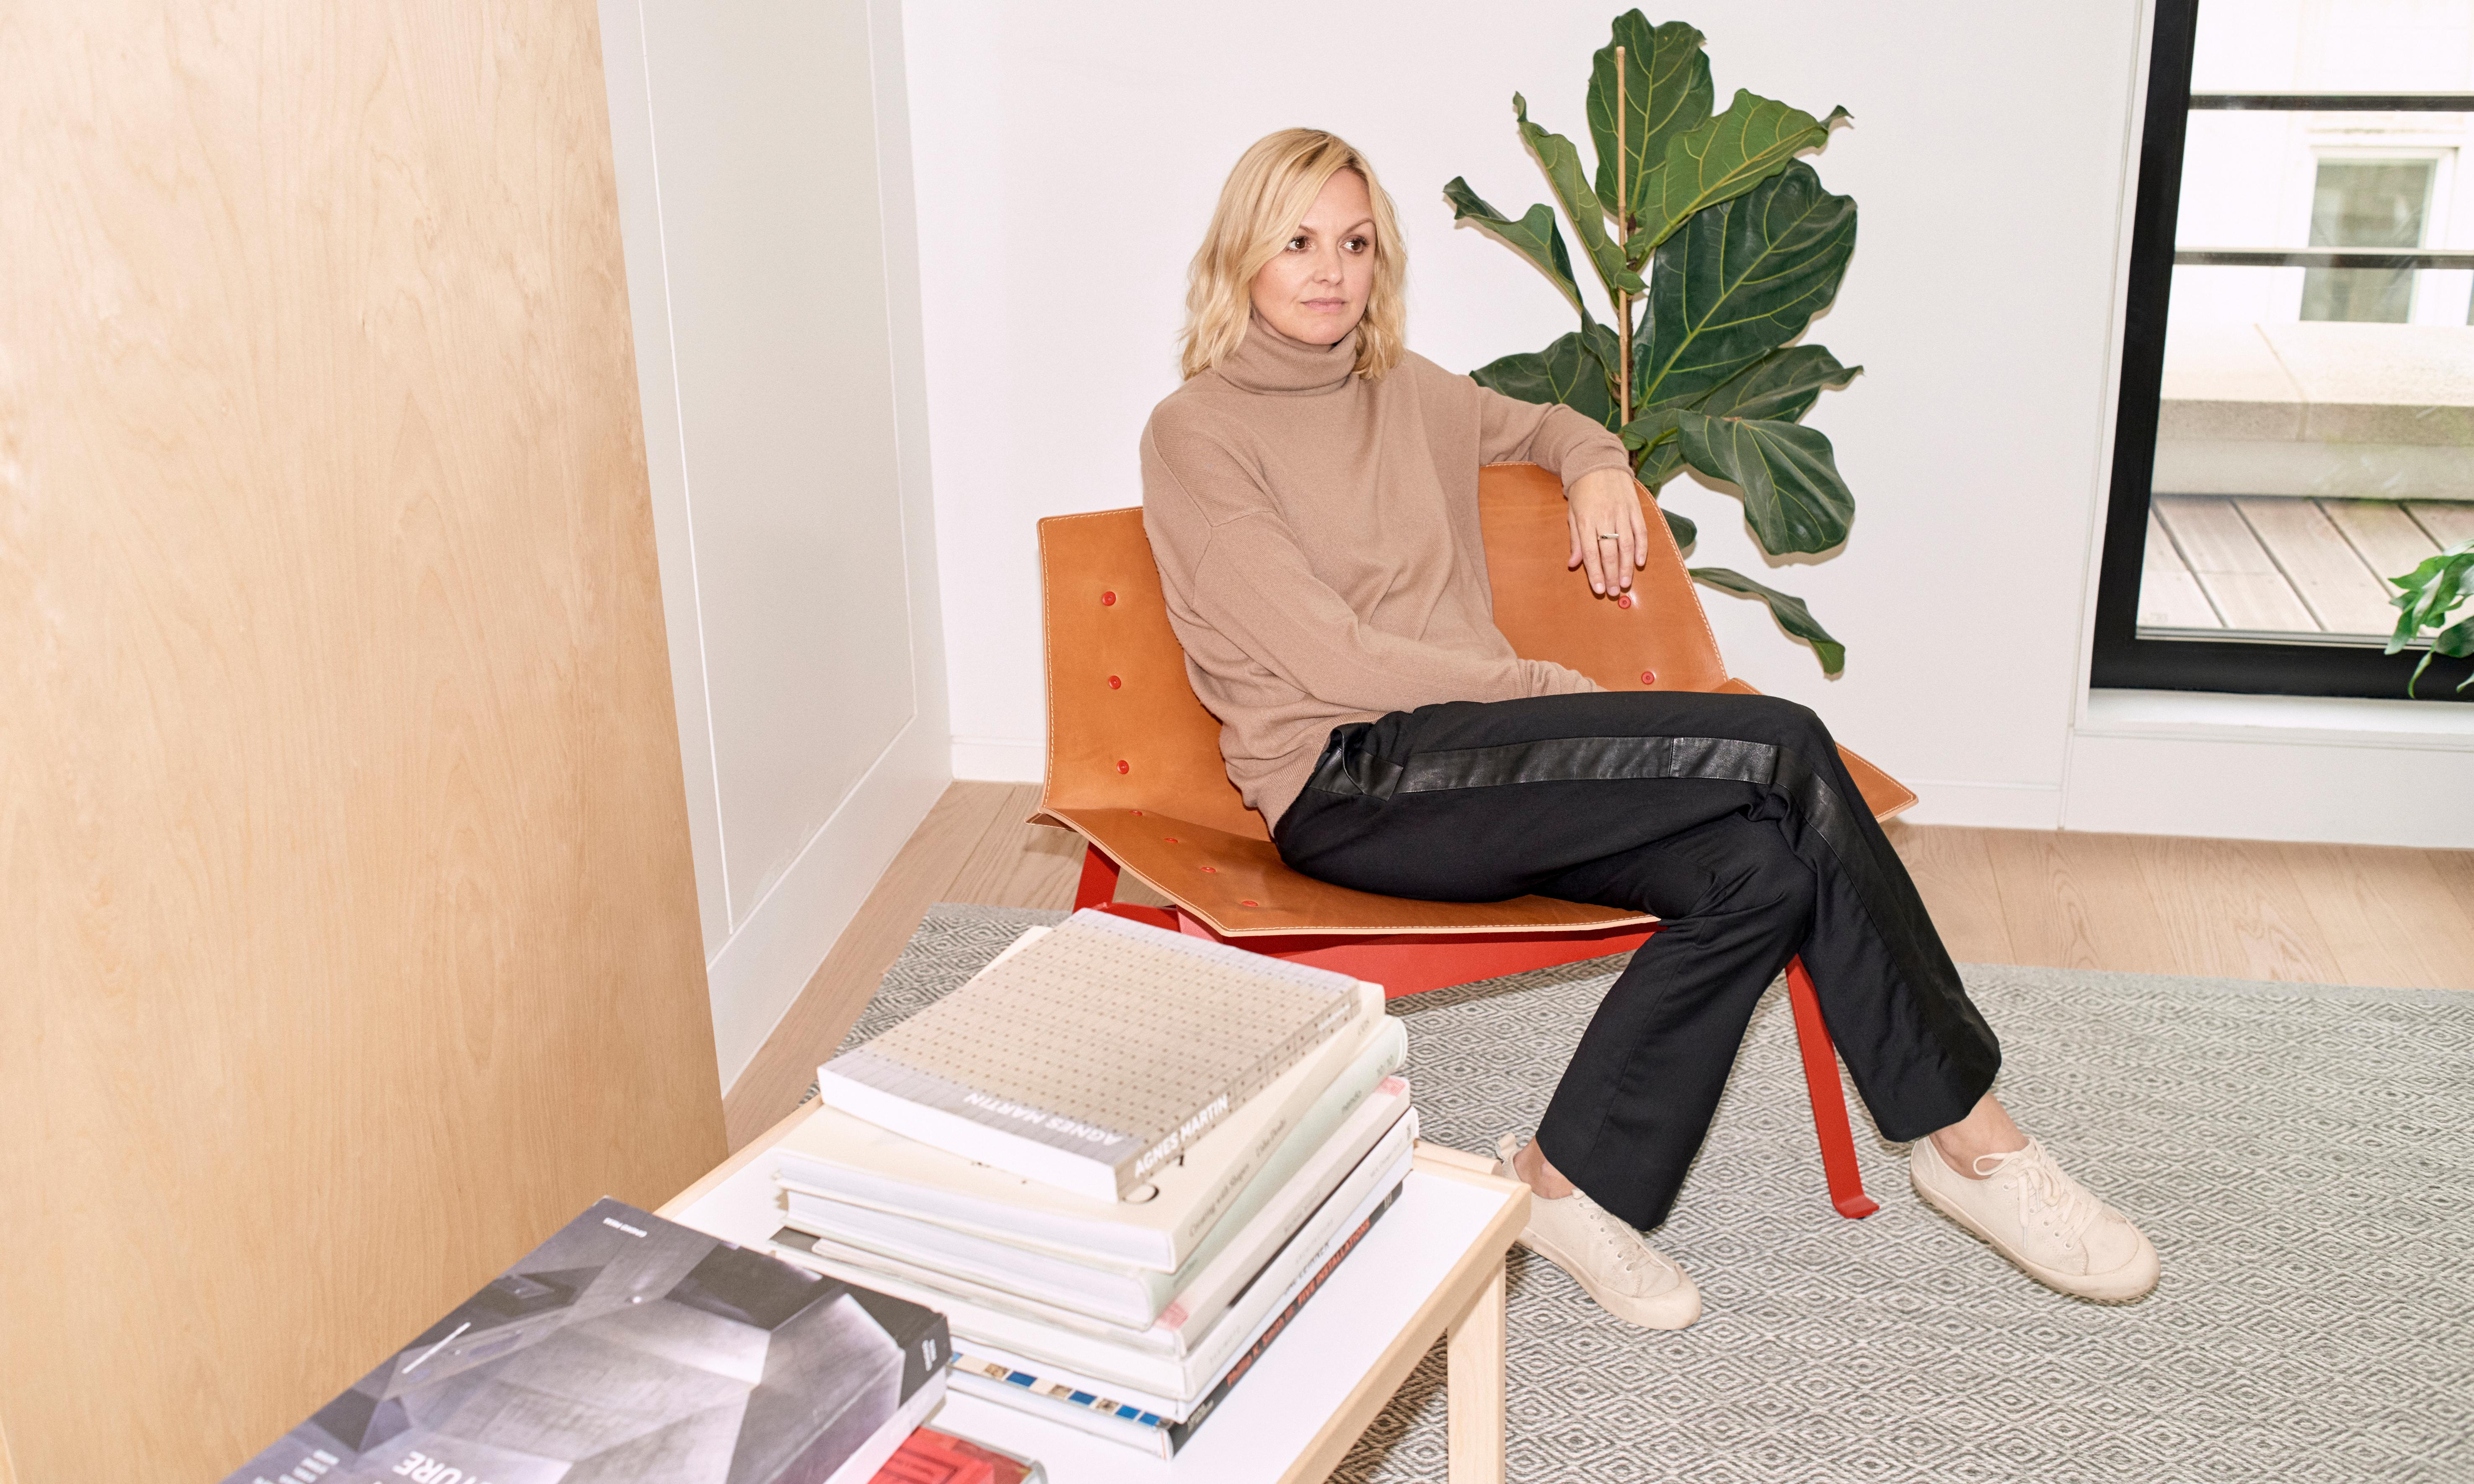 Cos creative director Karin Gustafsson: 'There's nothing unique about taking inspiration from art'